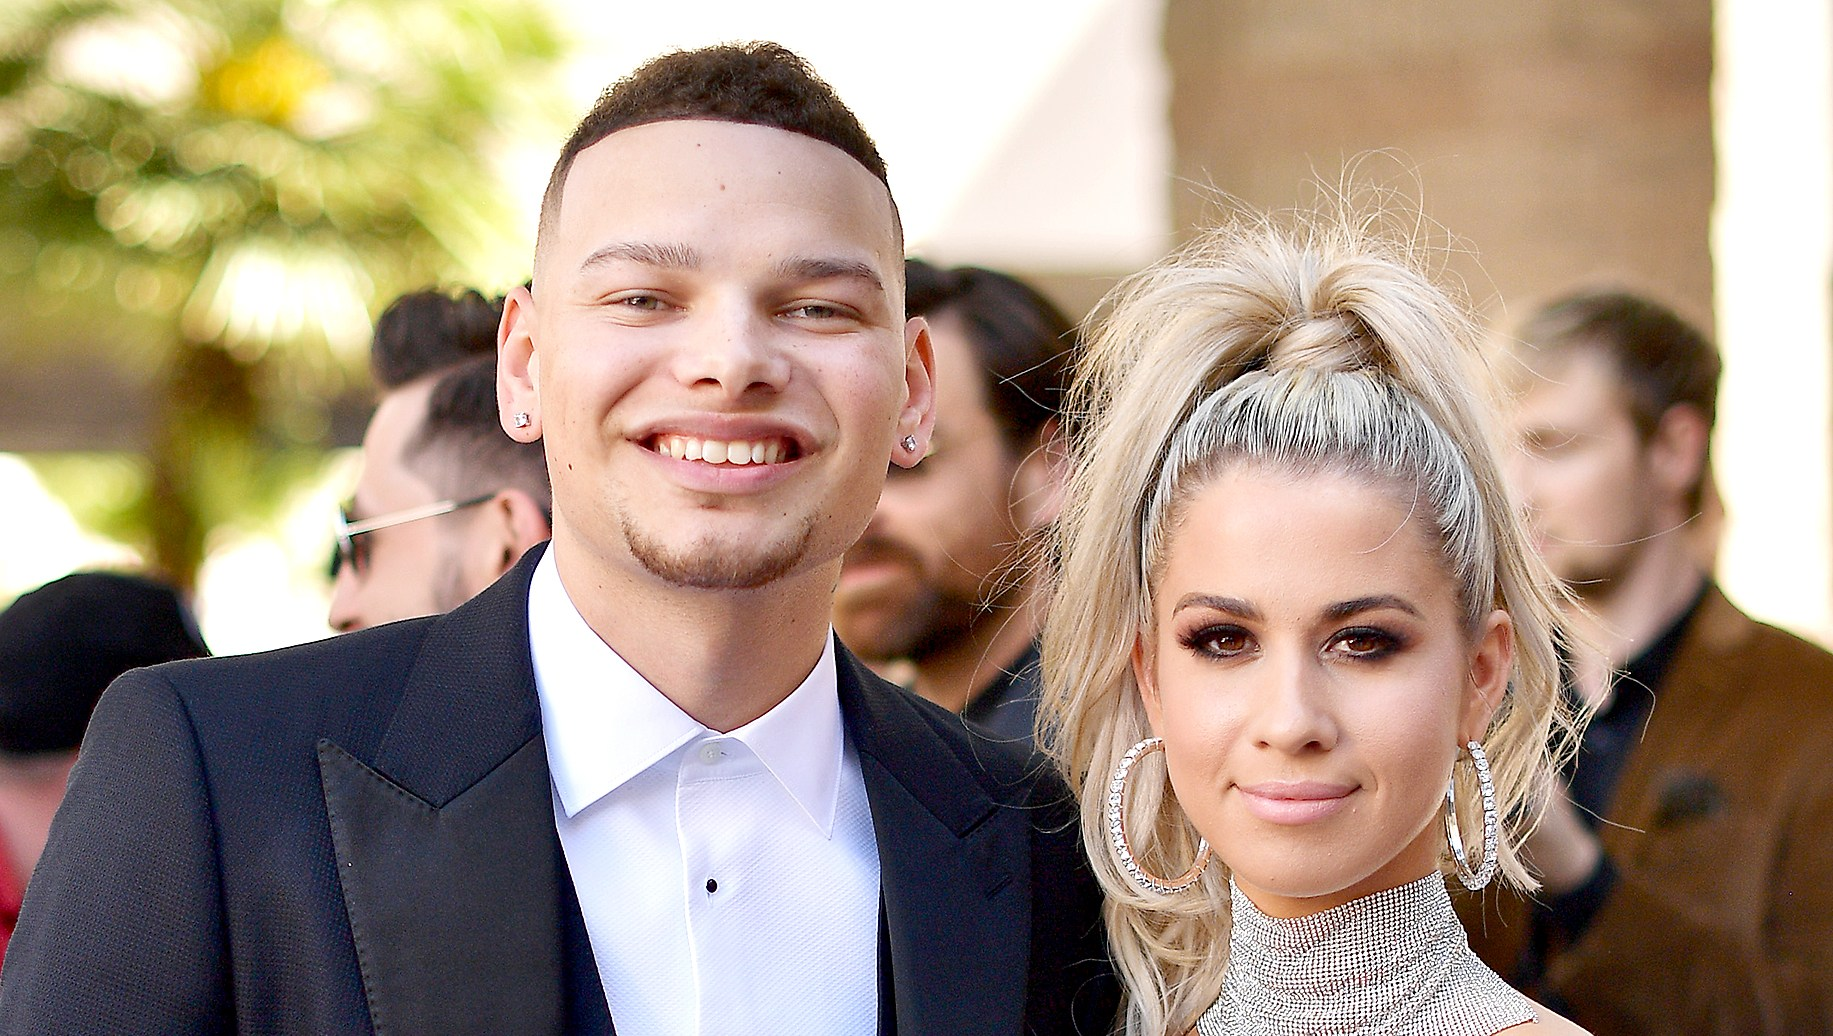 Kane-Brown,-Wife-Katelyn-Jae-Expecting-First-Child-Together